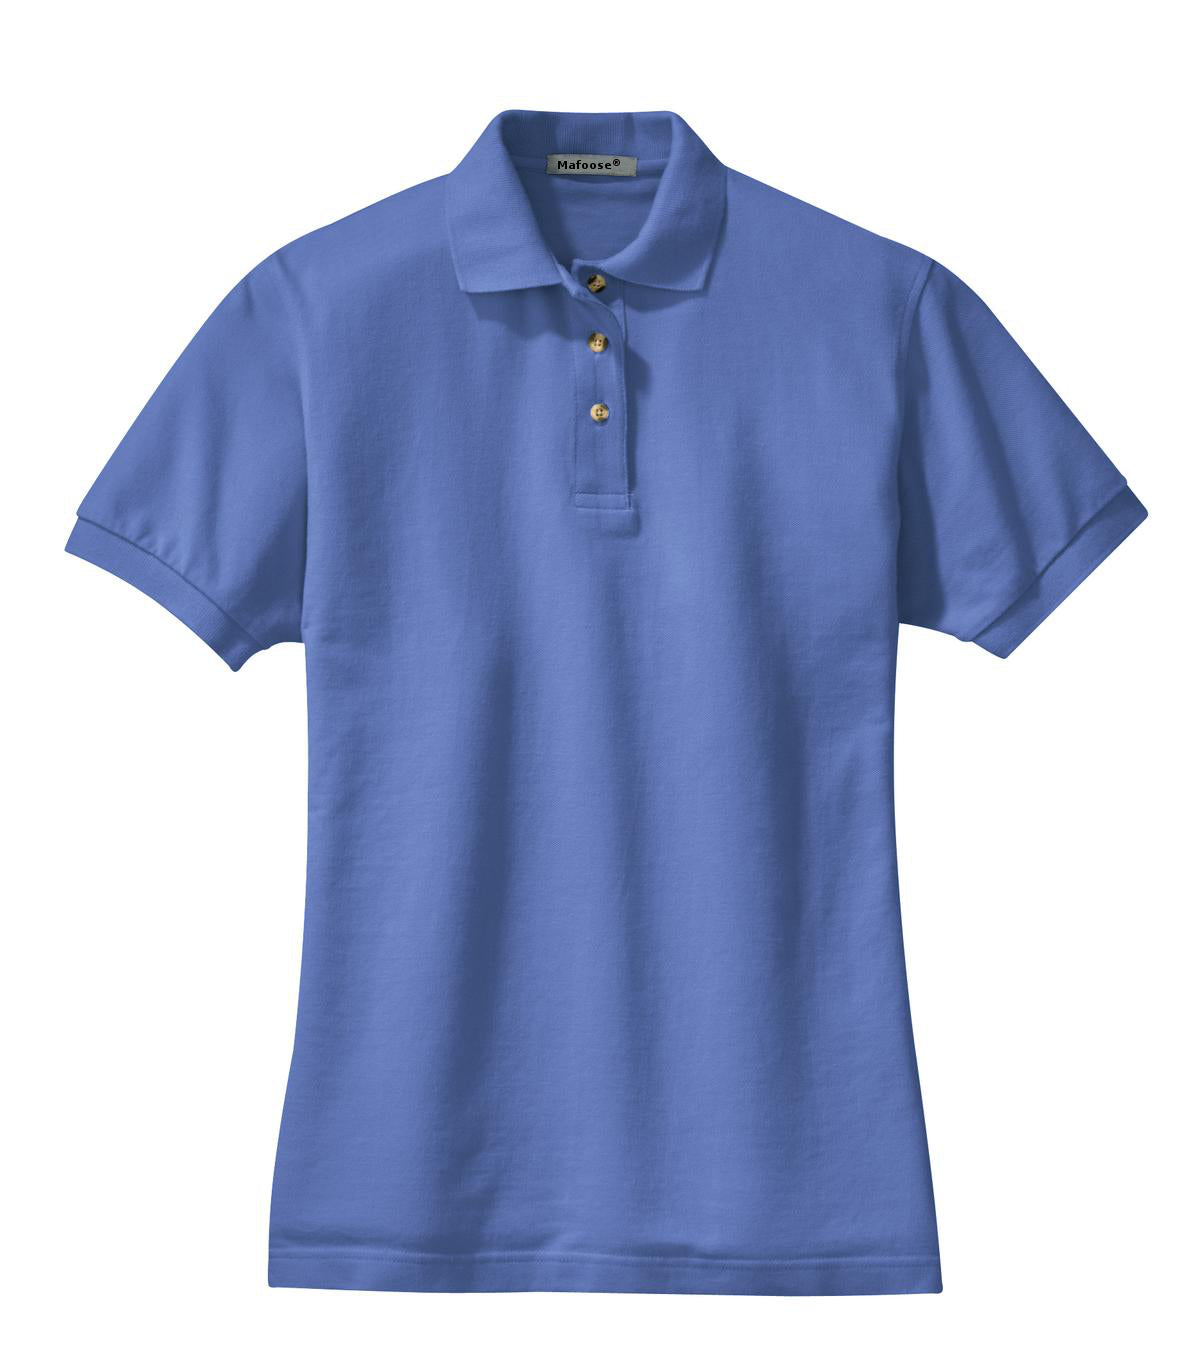 Mafoose Women's Heavyweight Cotton Pique Polo Shirt Faded Blue-Front